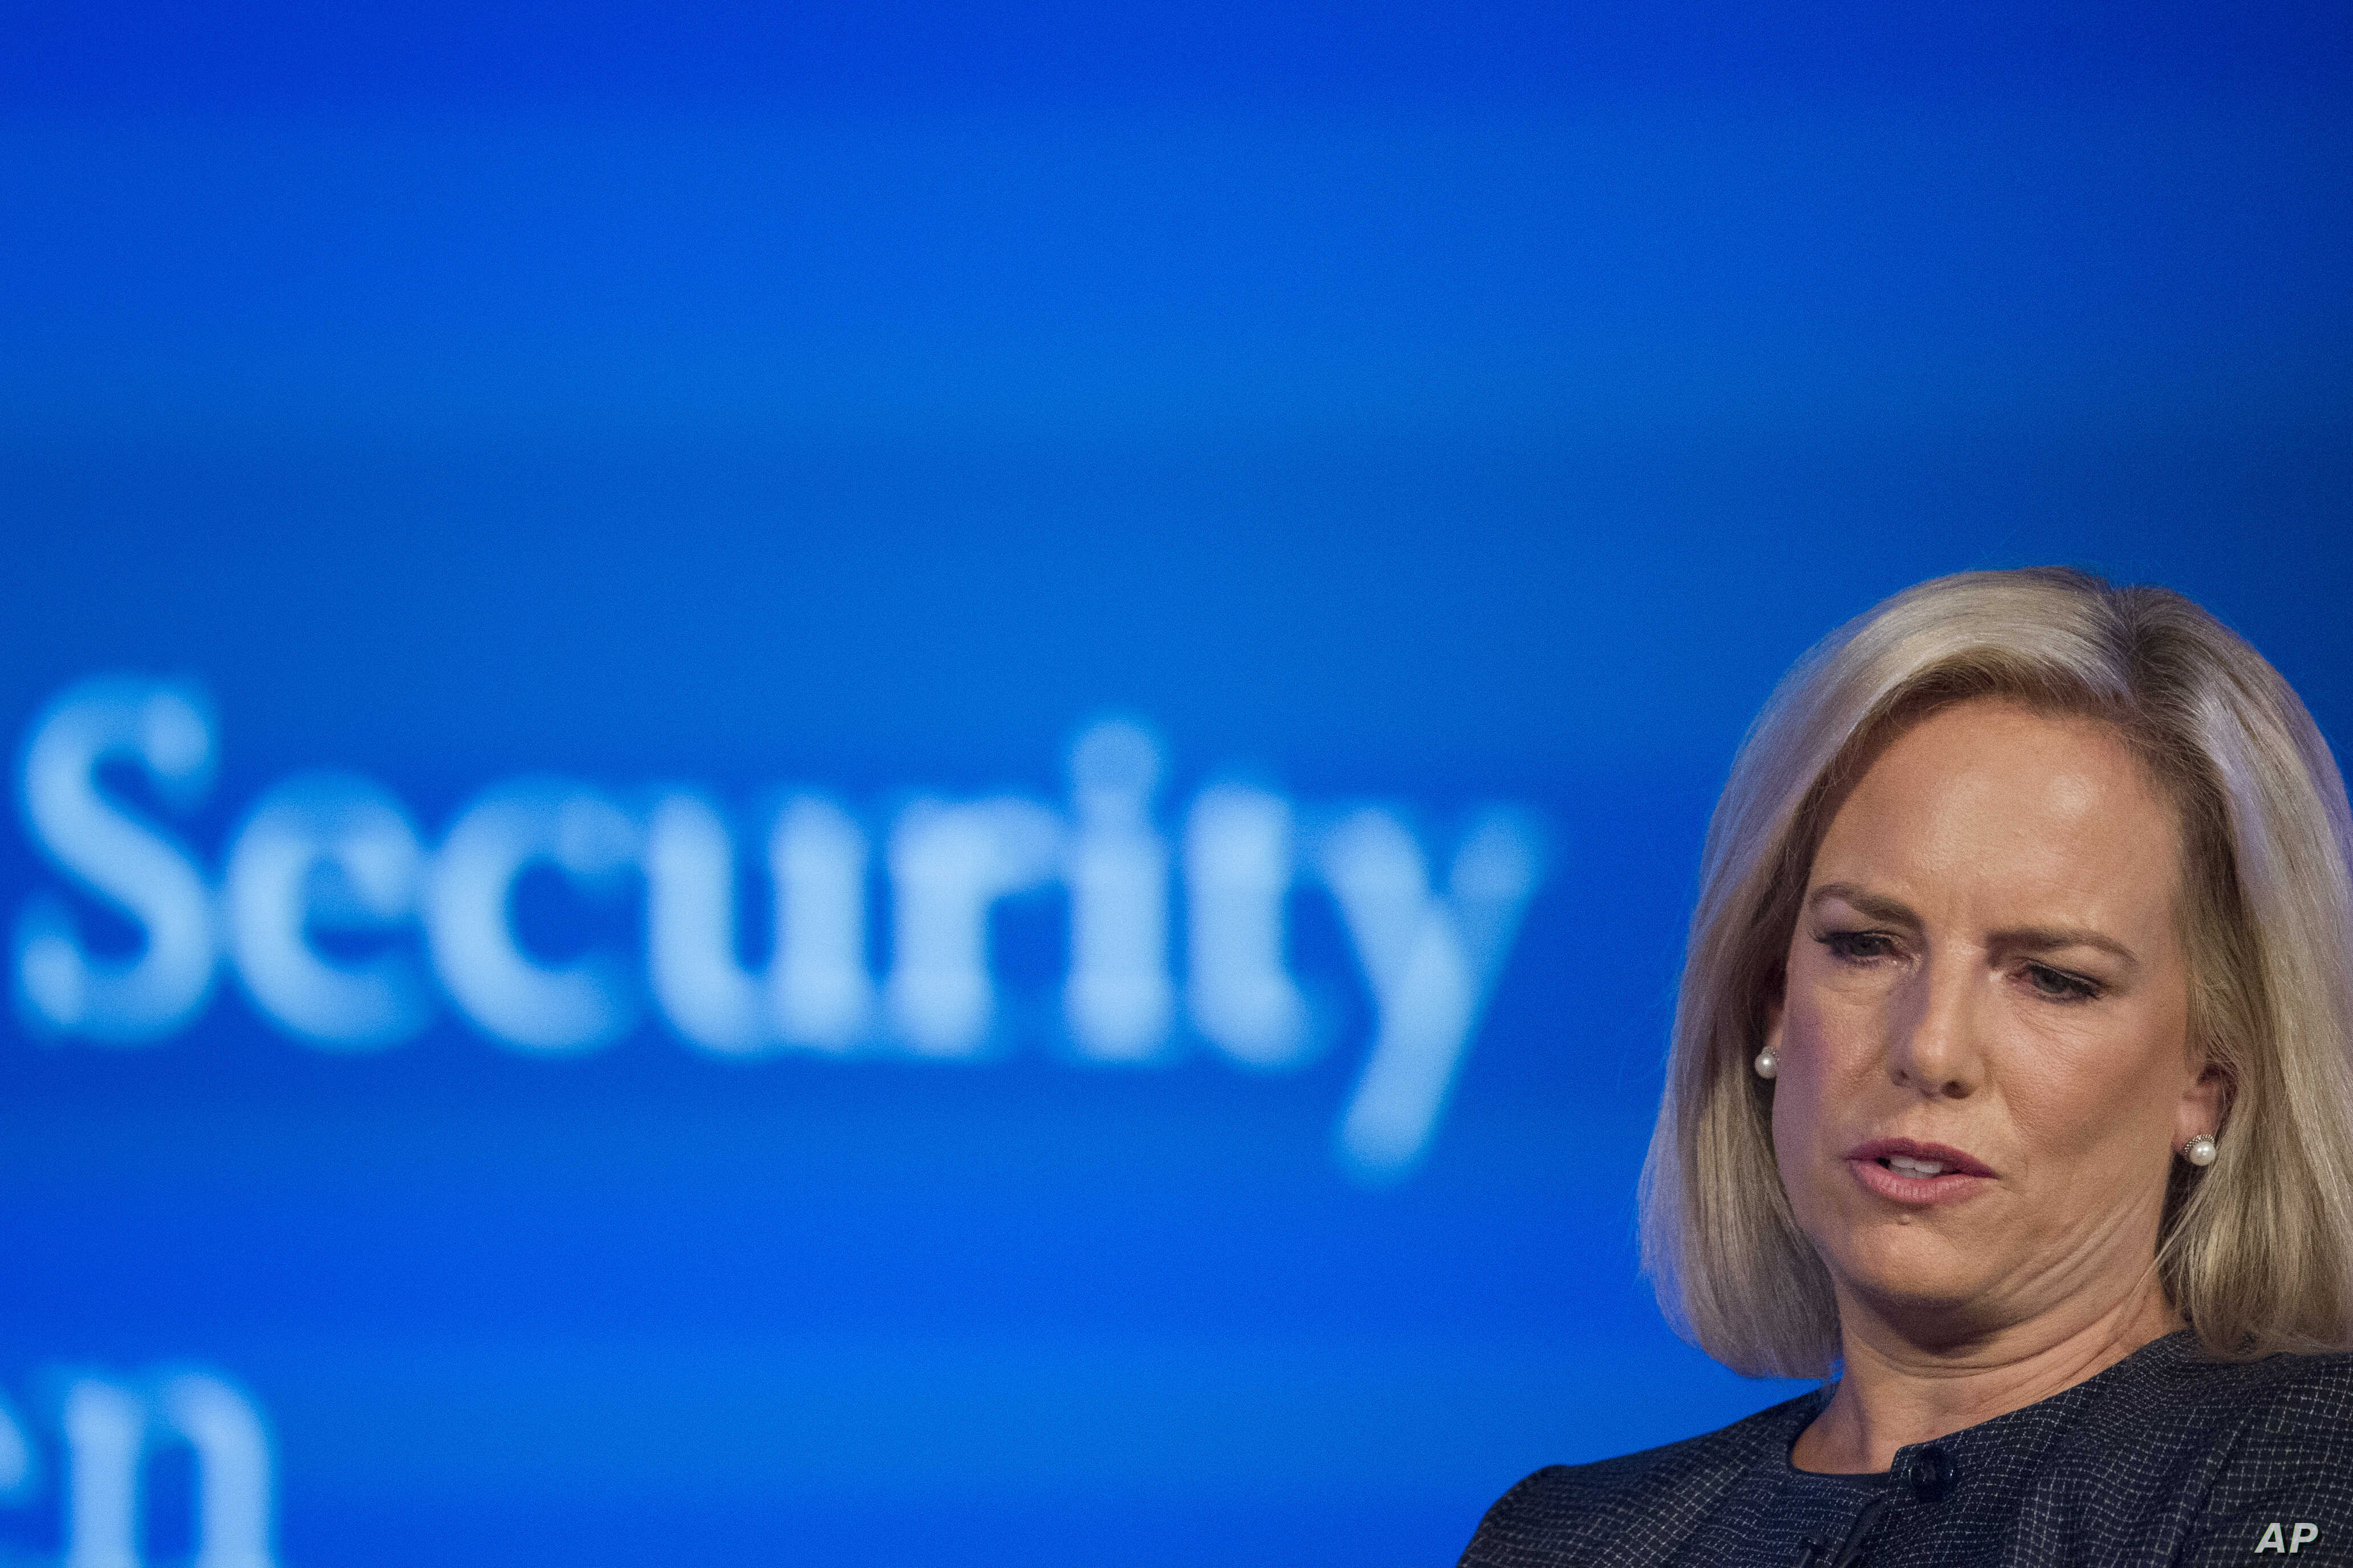 Secretary of Homeland Security Kirstjen Nielsen speaks to George Washington University's Center for Cyber and Homeland Security, in Washington, Sept. 5, 2018. Nielsen lays out her vision for the sprawling department, as midterm elections loom amid pe...